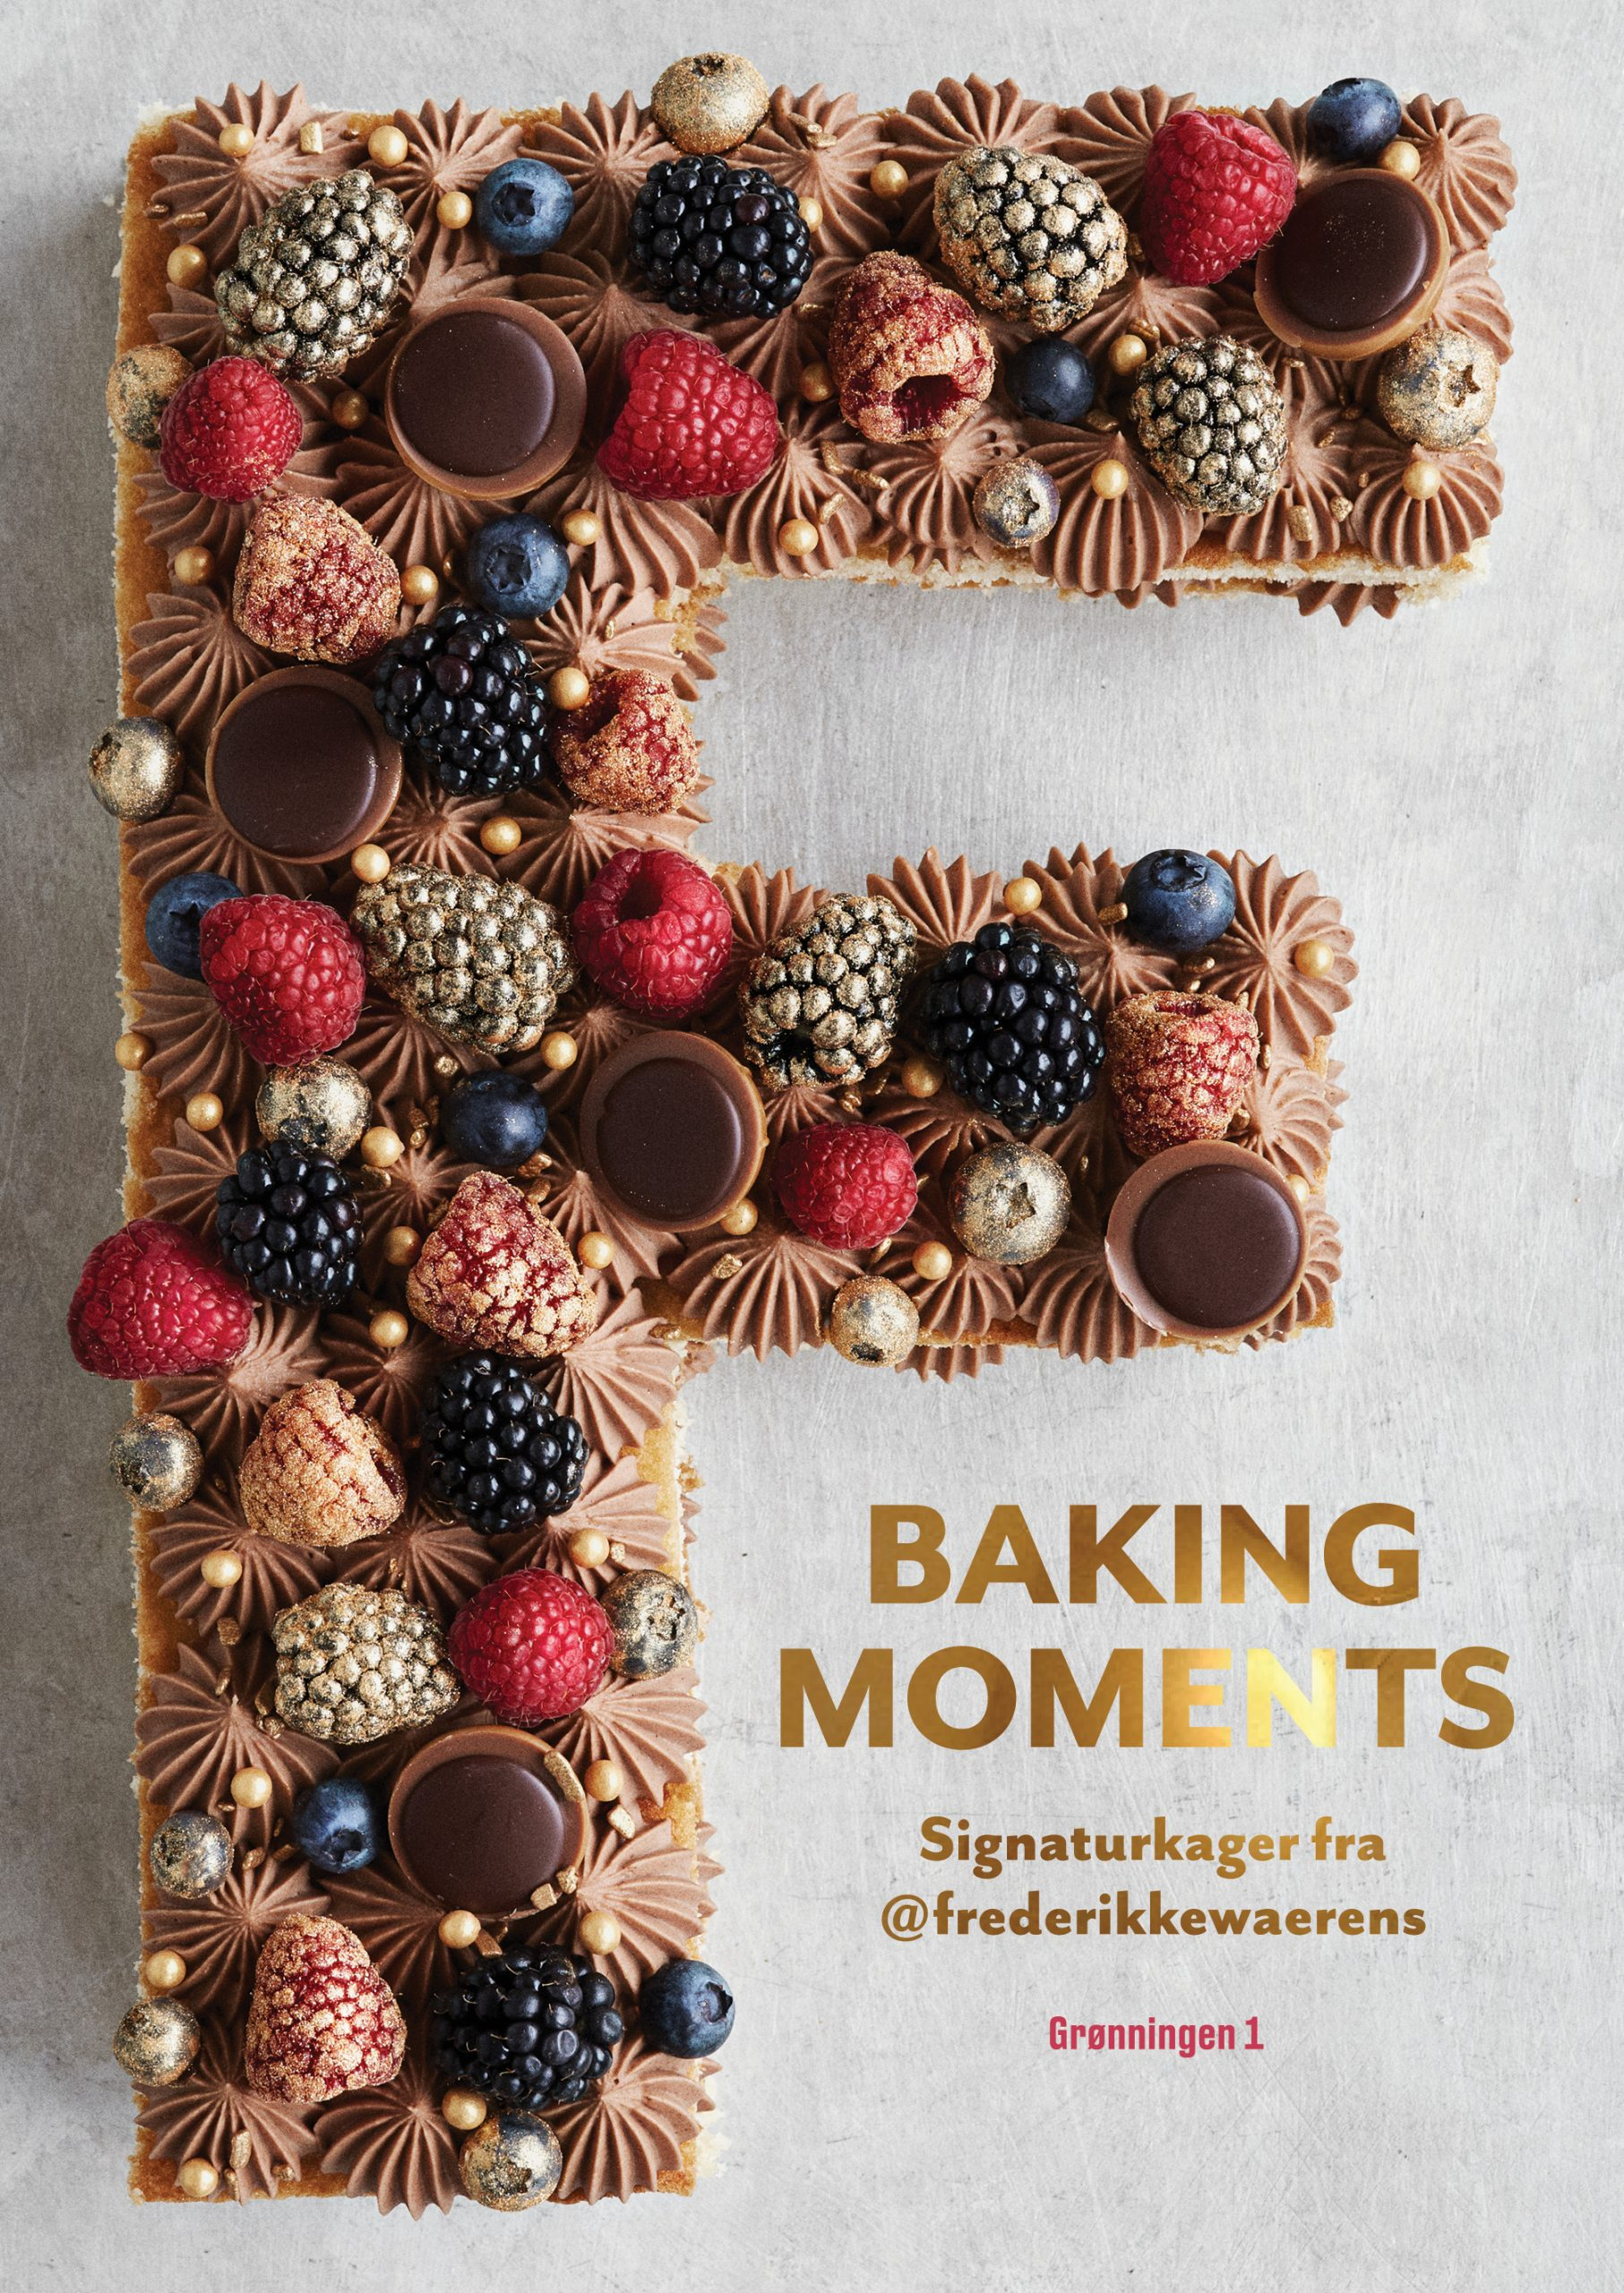 BAKING MOMENTS SIGNATURKAGER